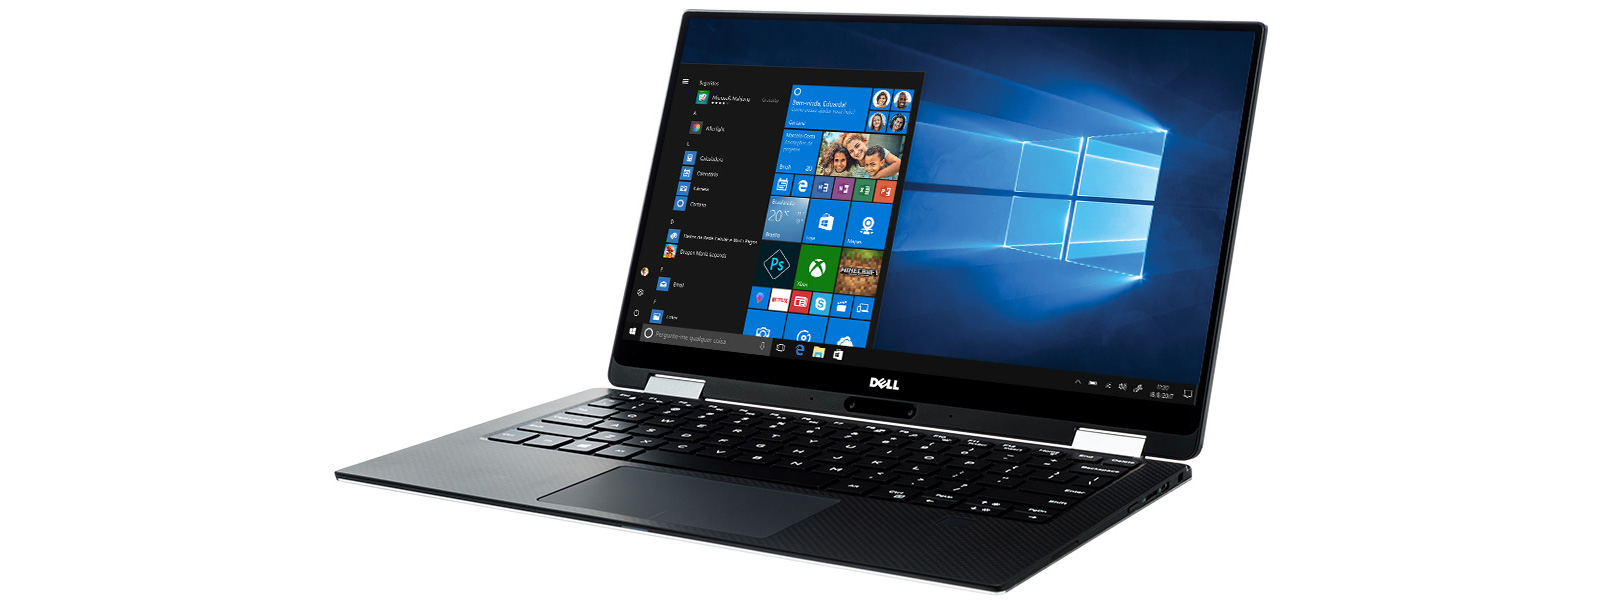 Um Dell XPS 13 mostrando uma tela inicial do Windows 10.